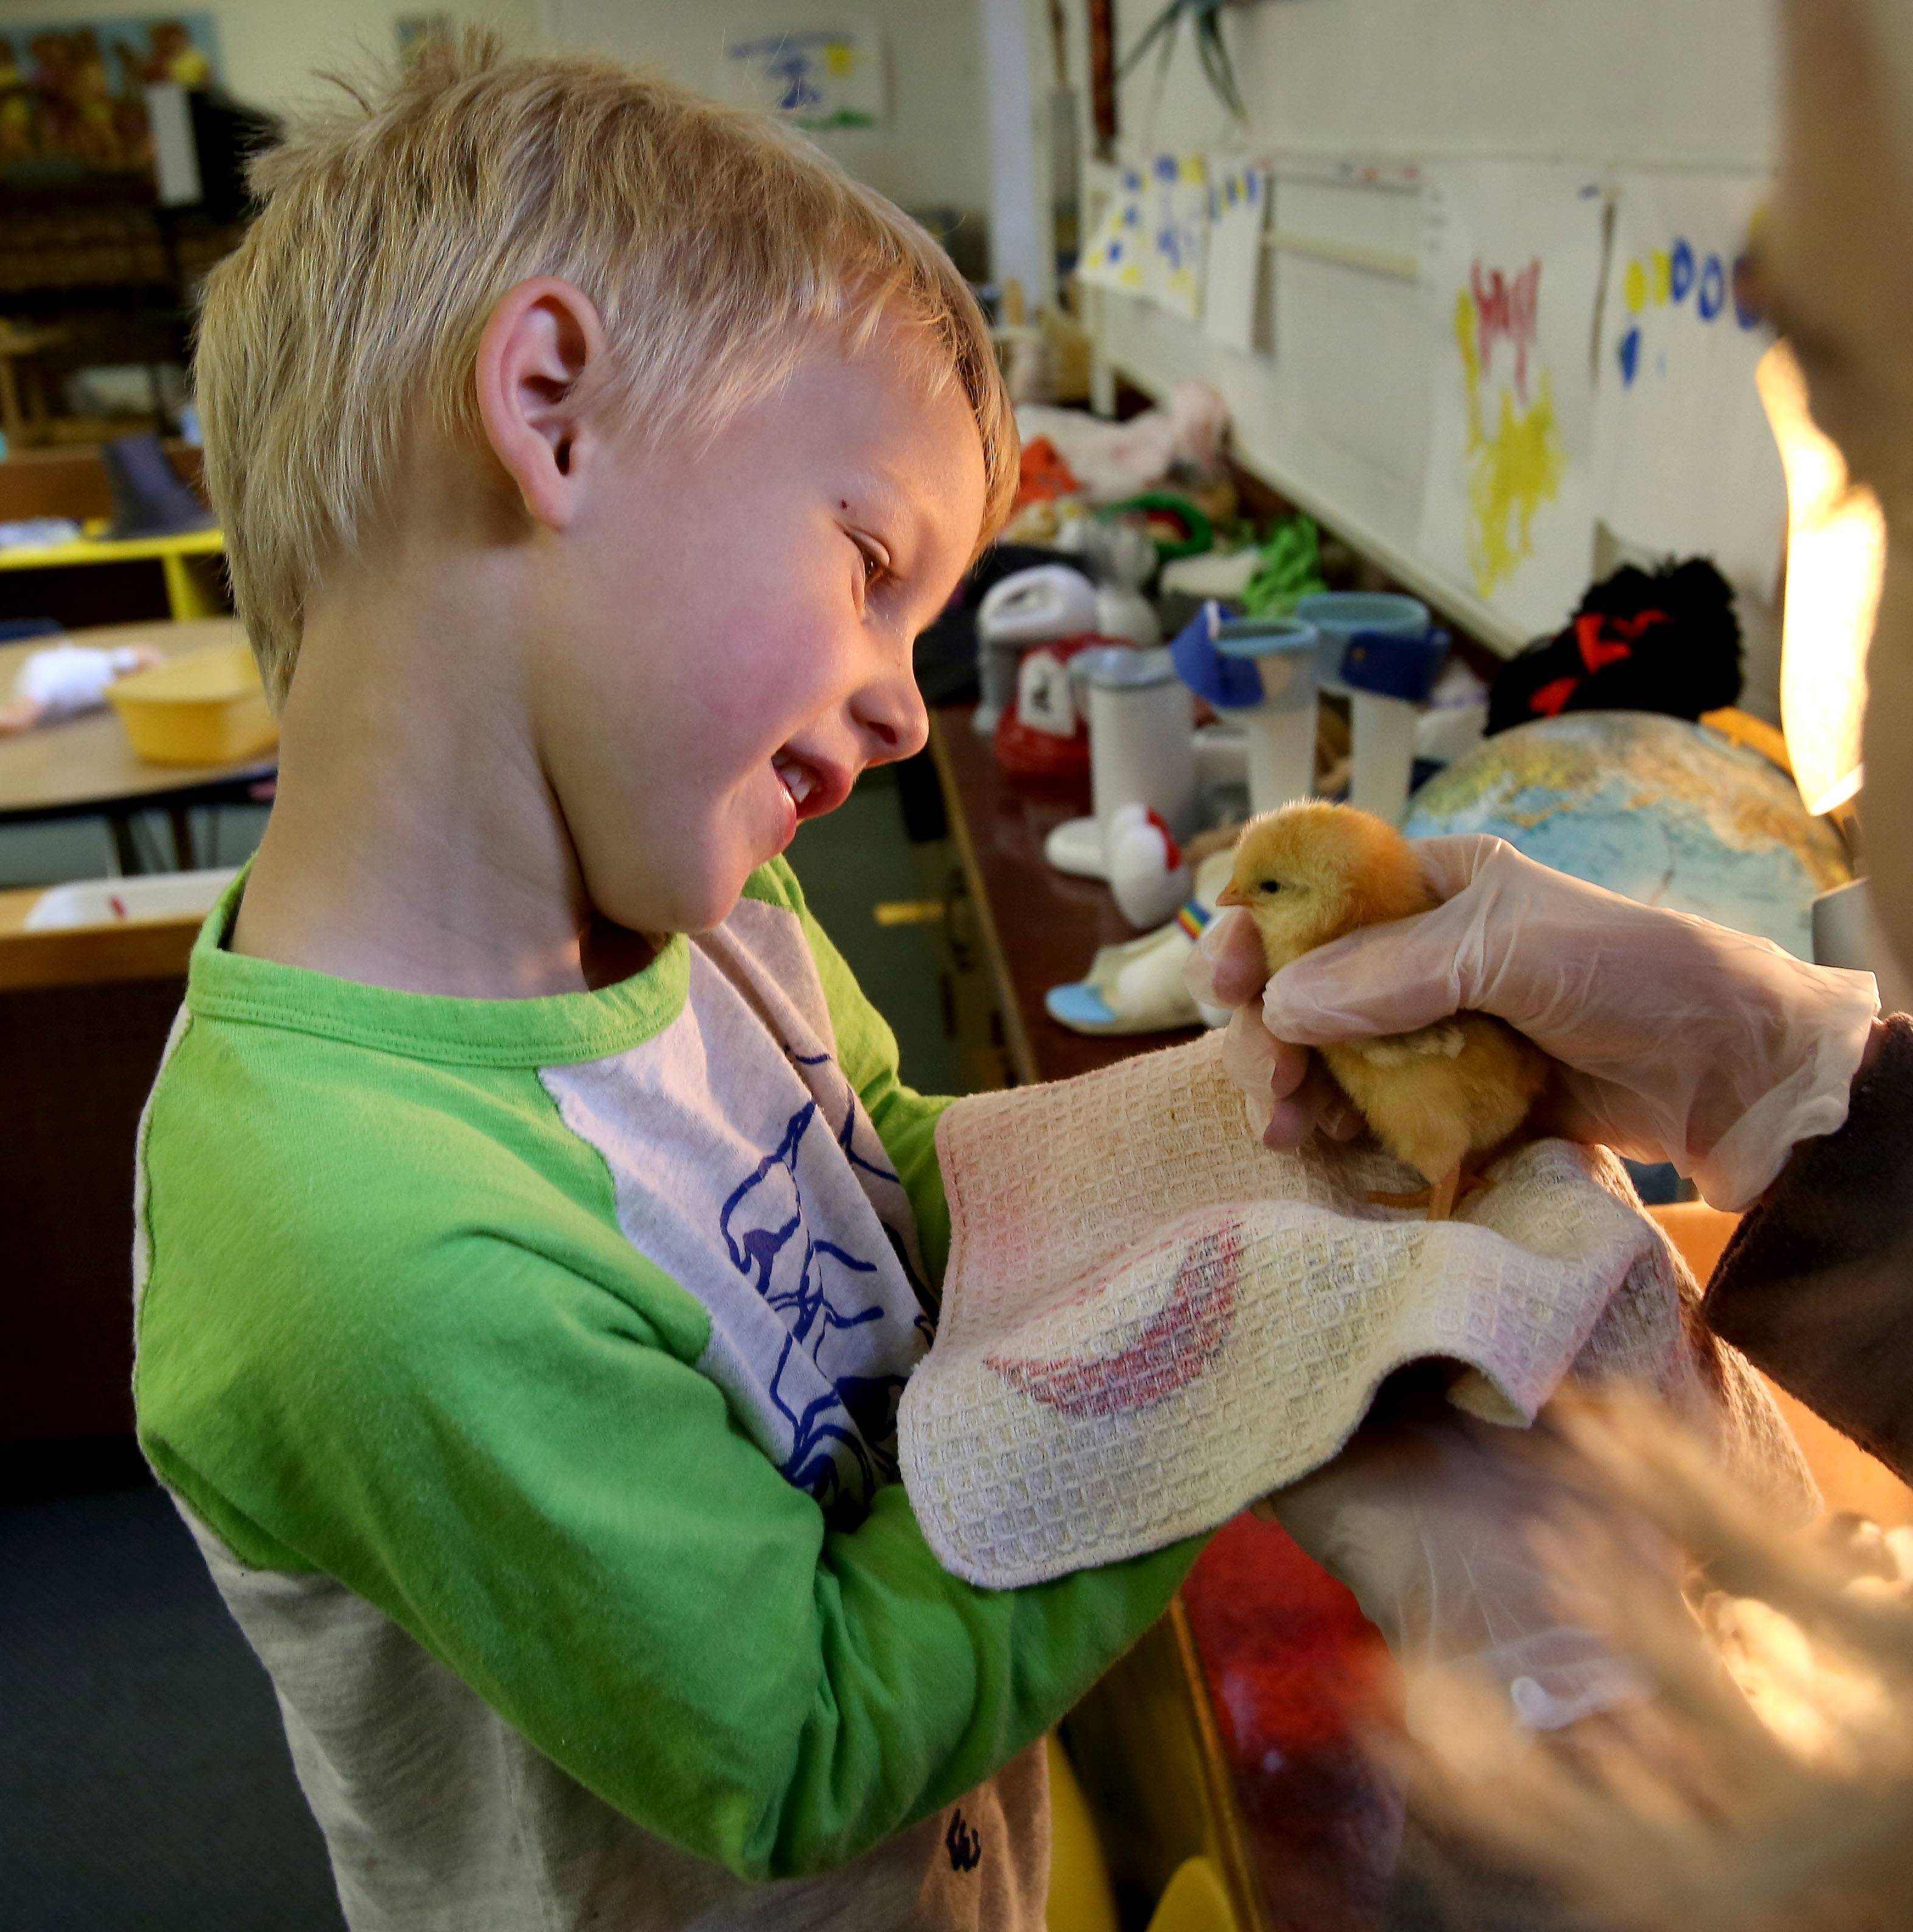 Brady Hamman, 4, gets a closer look at a chick at the Loretto Early Childhood Center in Wheaton. The preschool is closing after serving children for more than 60 years.